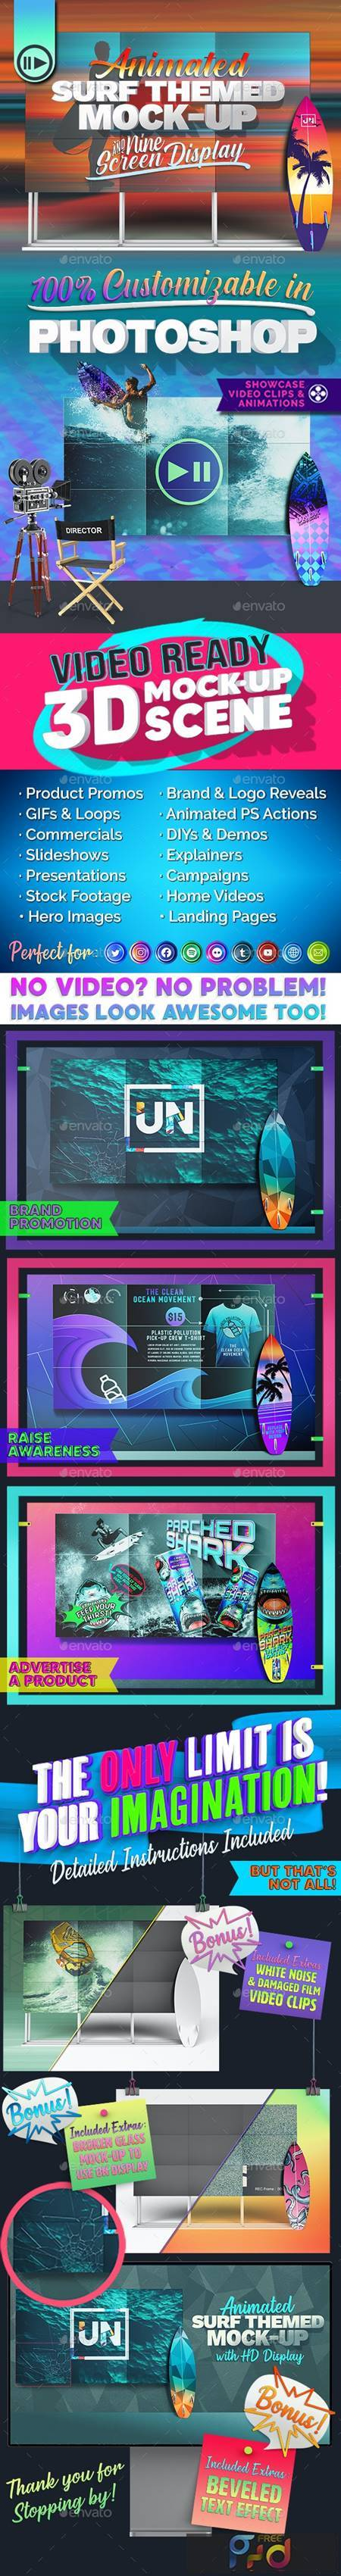 3D Animated Surfboard and HD Display Mock-Up Scene Template 27056336 1